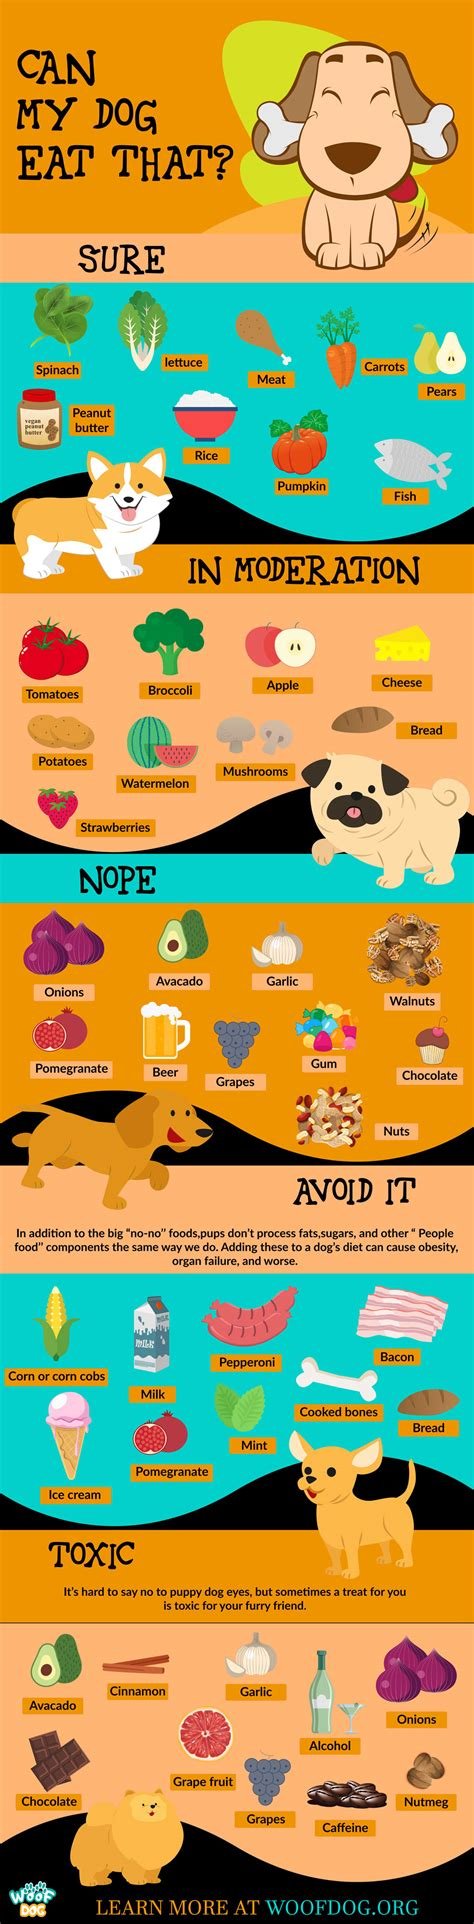 foods that dogs can t eat 30 human foods dogs can and can t eat 11 toxic and dangerous